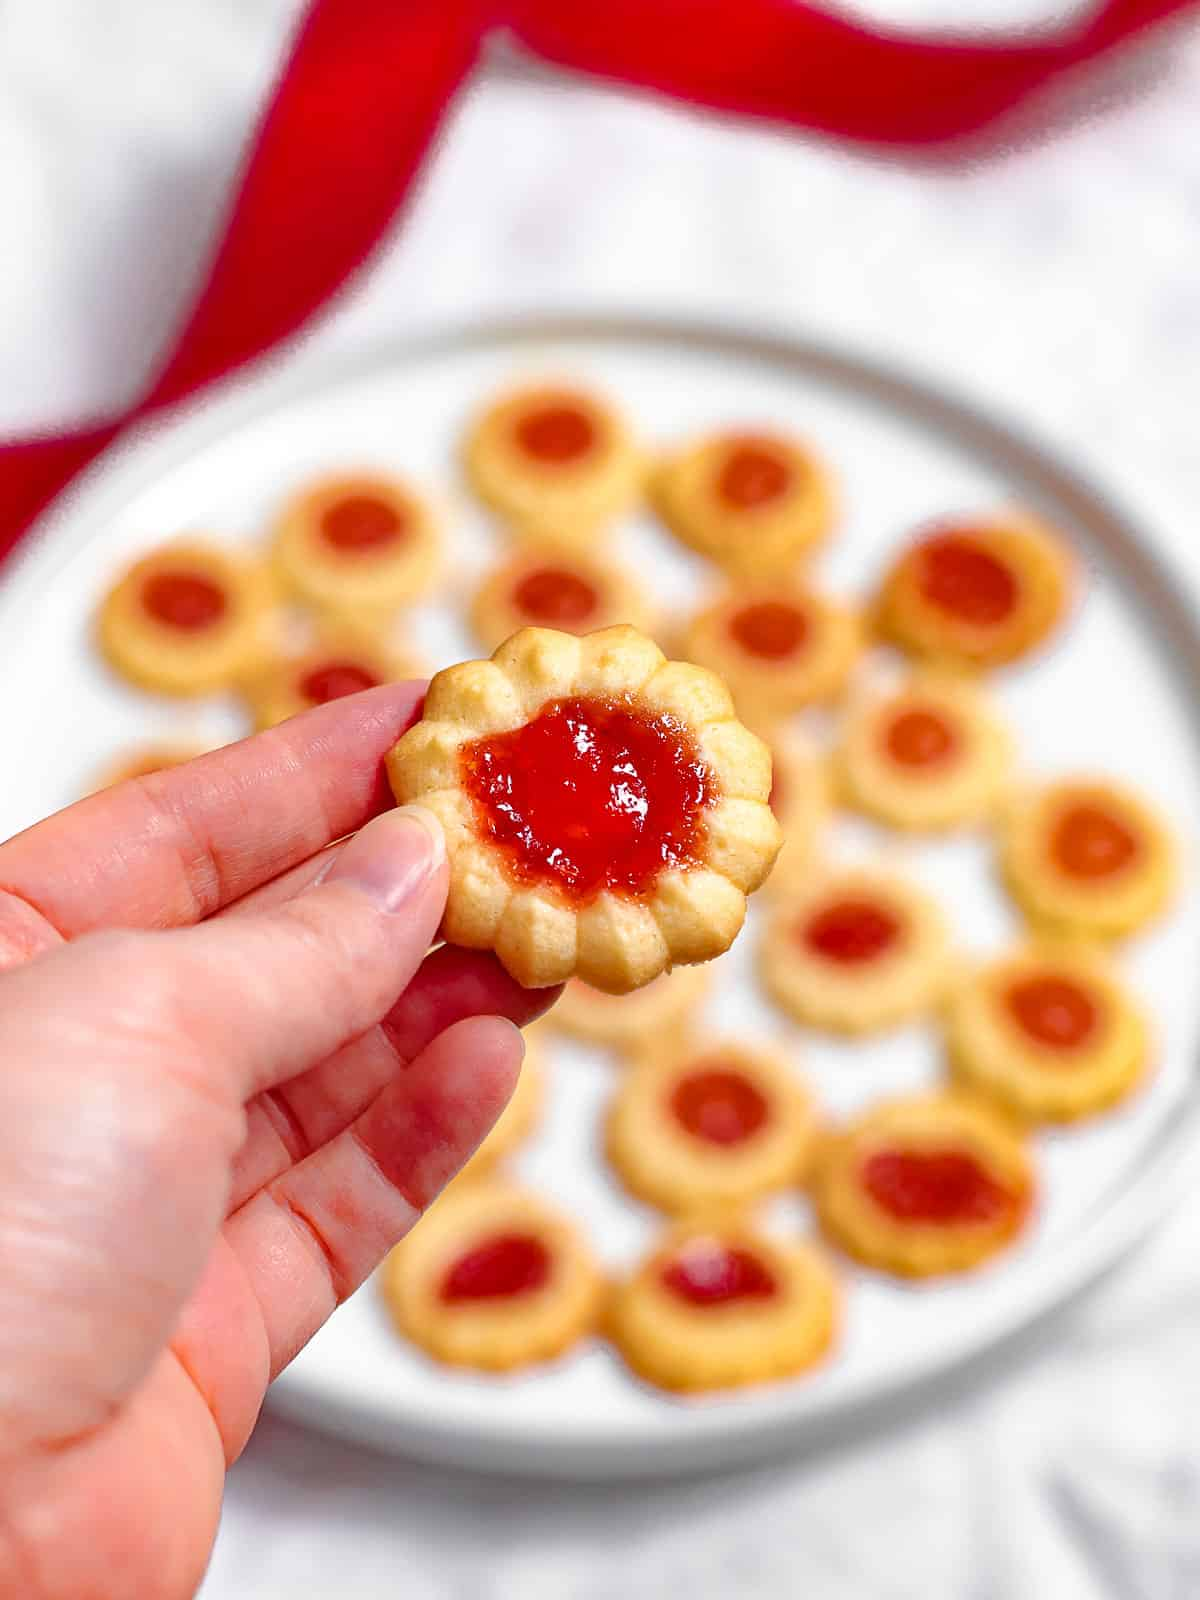 A hand holding a jam cookie filled with red strawberry jam with a plate full of jam cookies in the background.